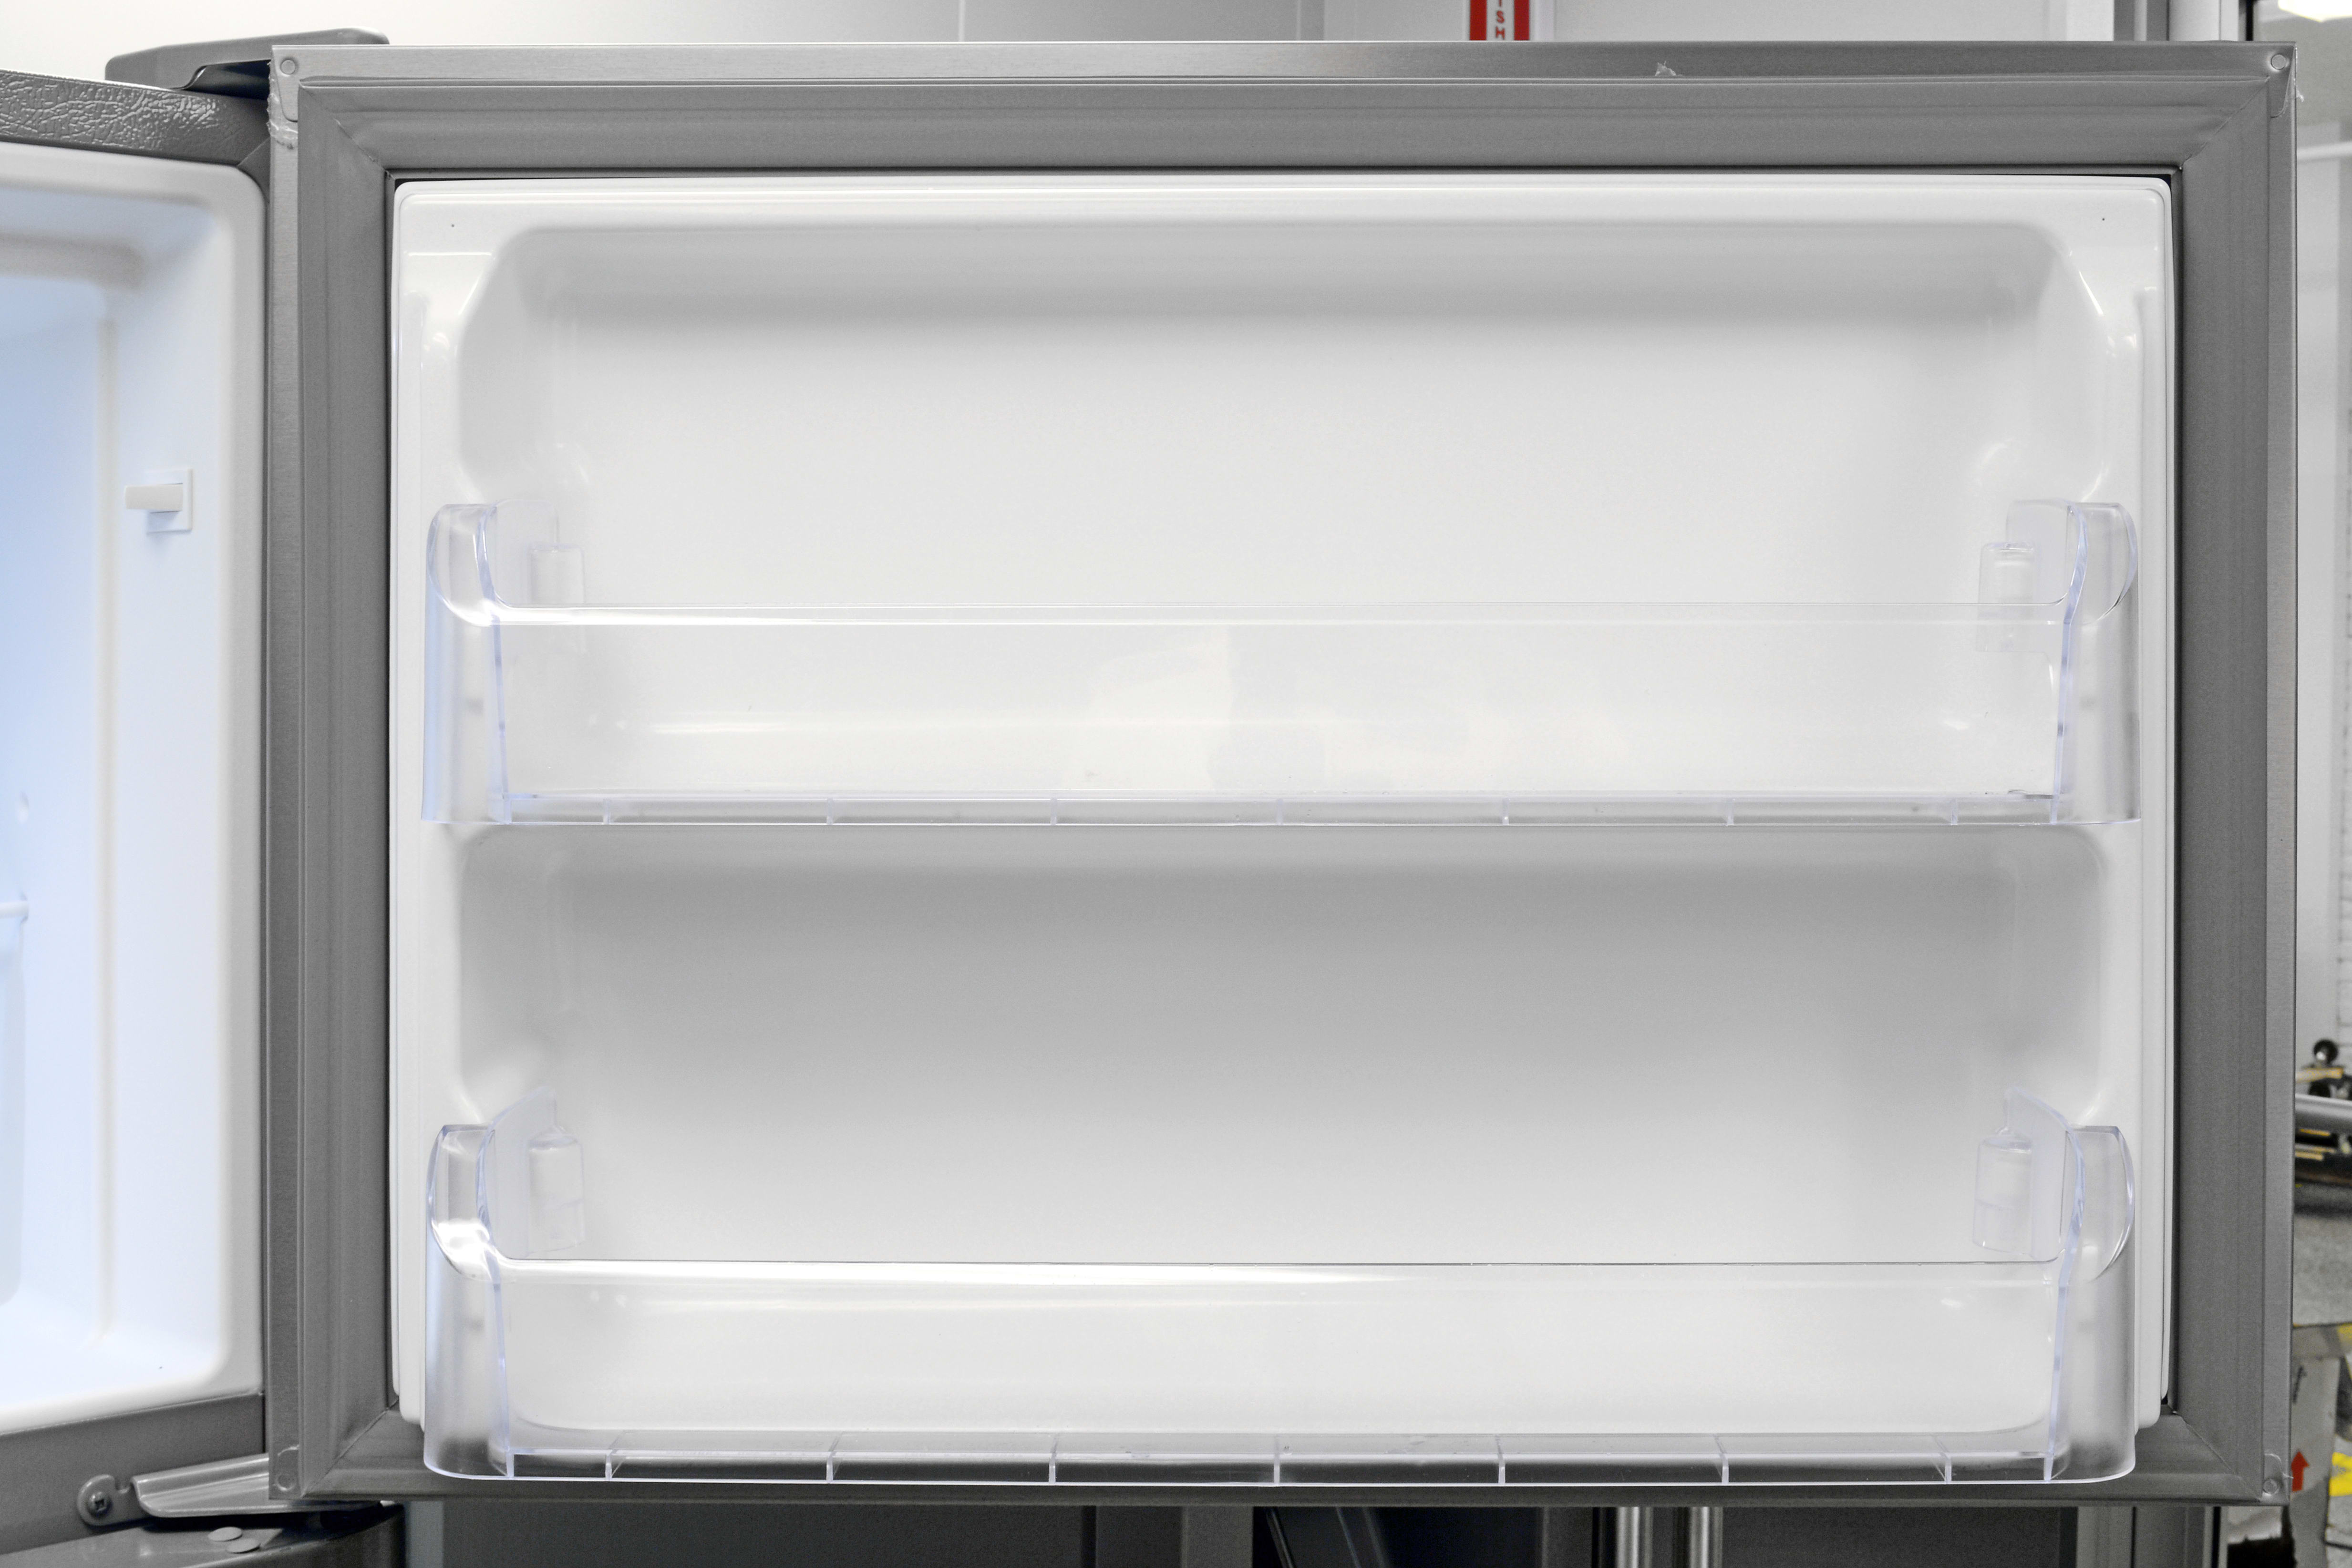 Freezer door storage in the Frigidaire Gallery FGHT2046QF? A pair of matching shelves that don't move.